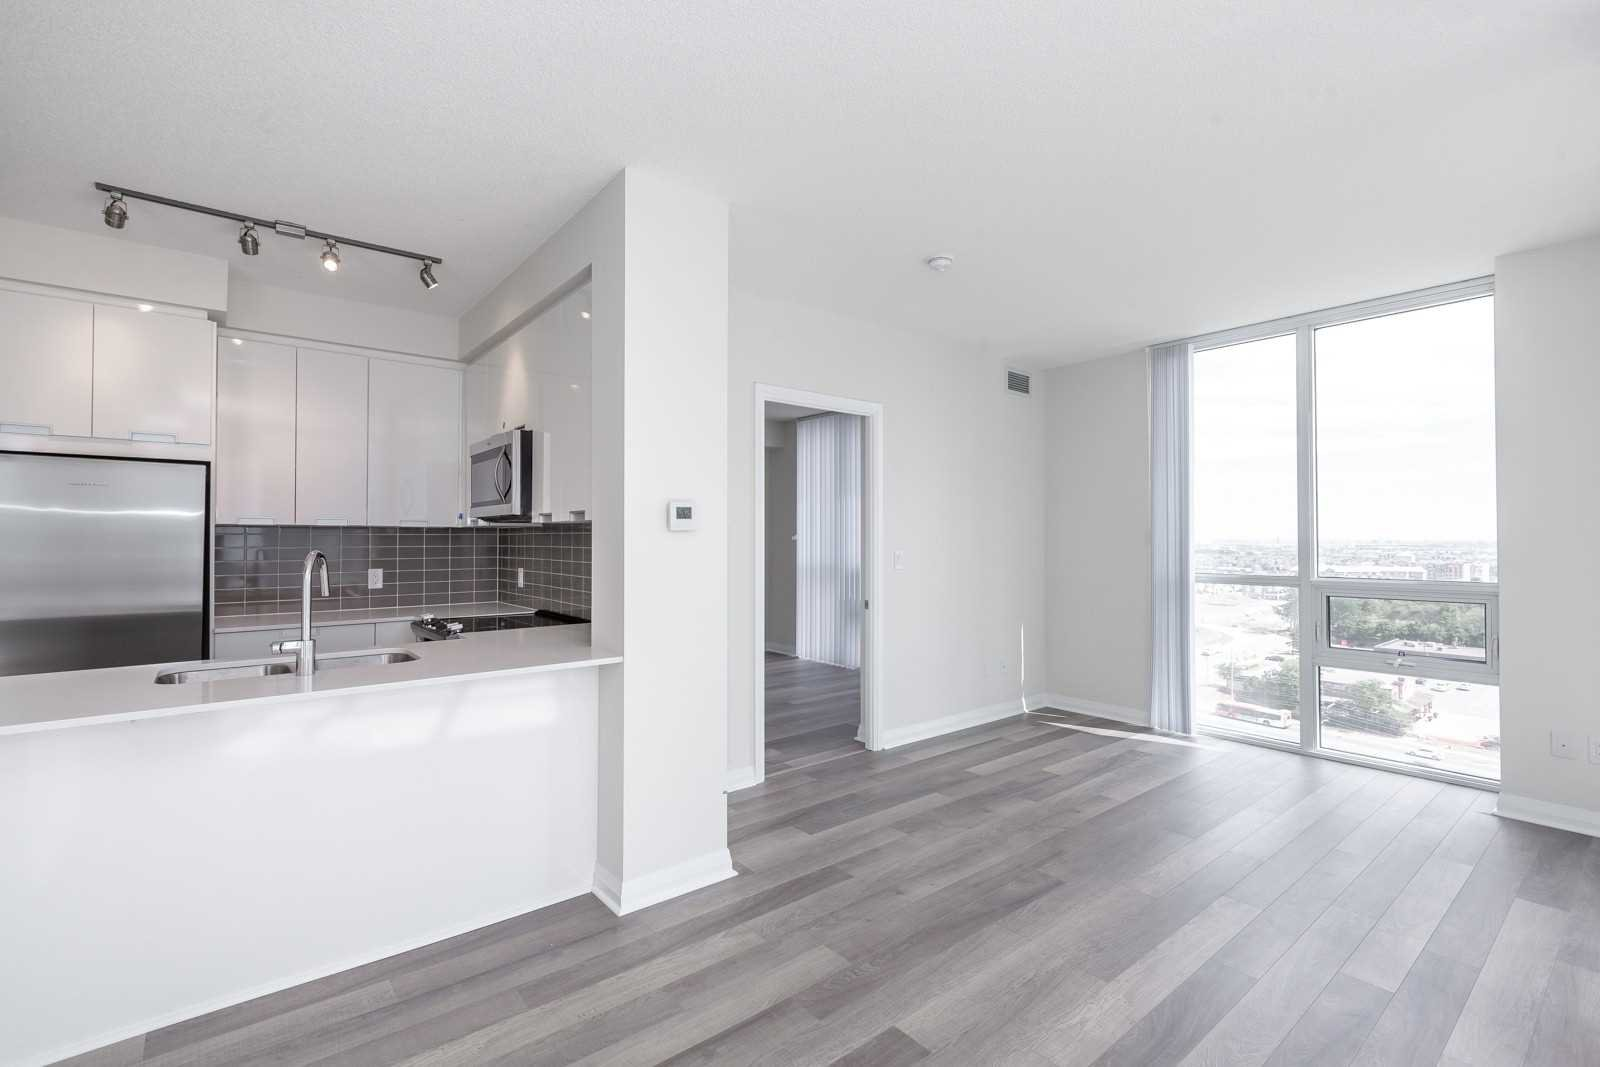 Photo 11: Photos: 1204 5025 Four Springs Avenue in Mississauga: Hurontario Condo for lease : MLS®# W4582092